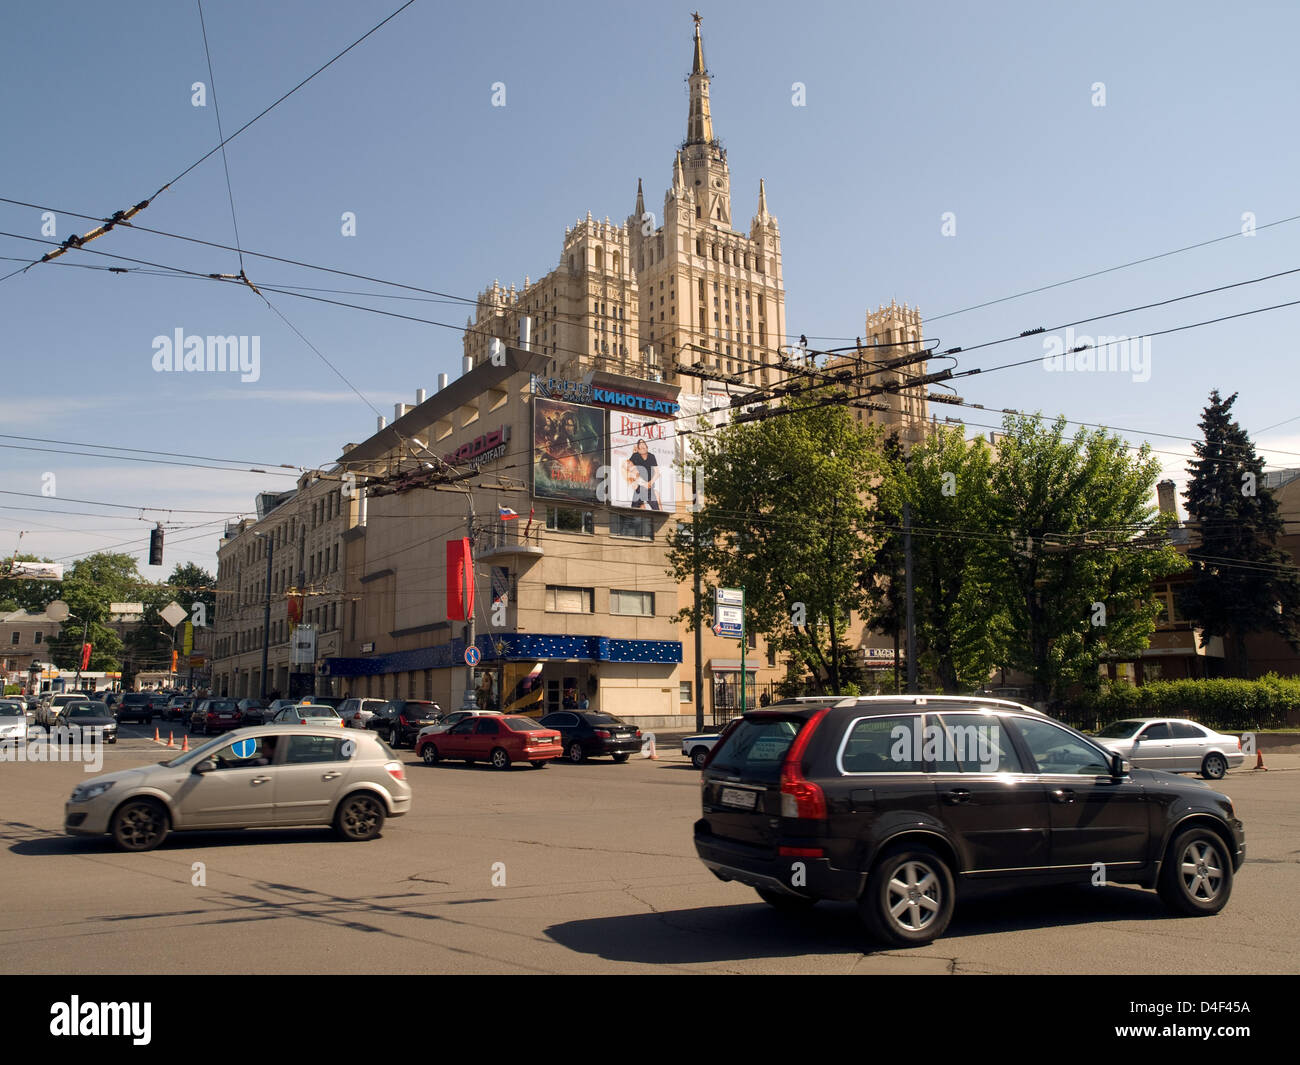 View on one of the Seven Sisters in Moscow, Russia, 08 May 2008. The Seven Sisters are seven high-risers in Moscow built in wedding-cake style. Photo: Bjoern Steinz Stock Photo